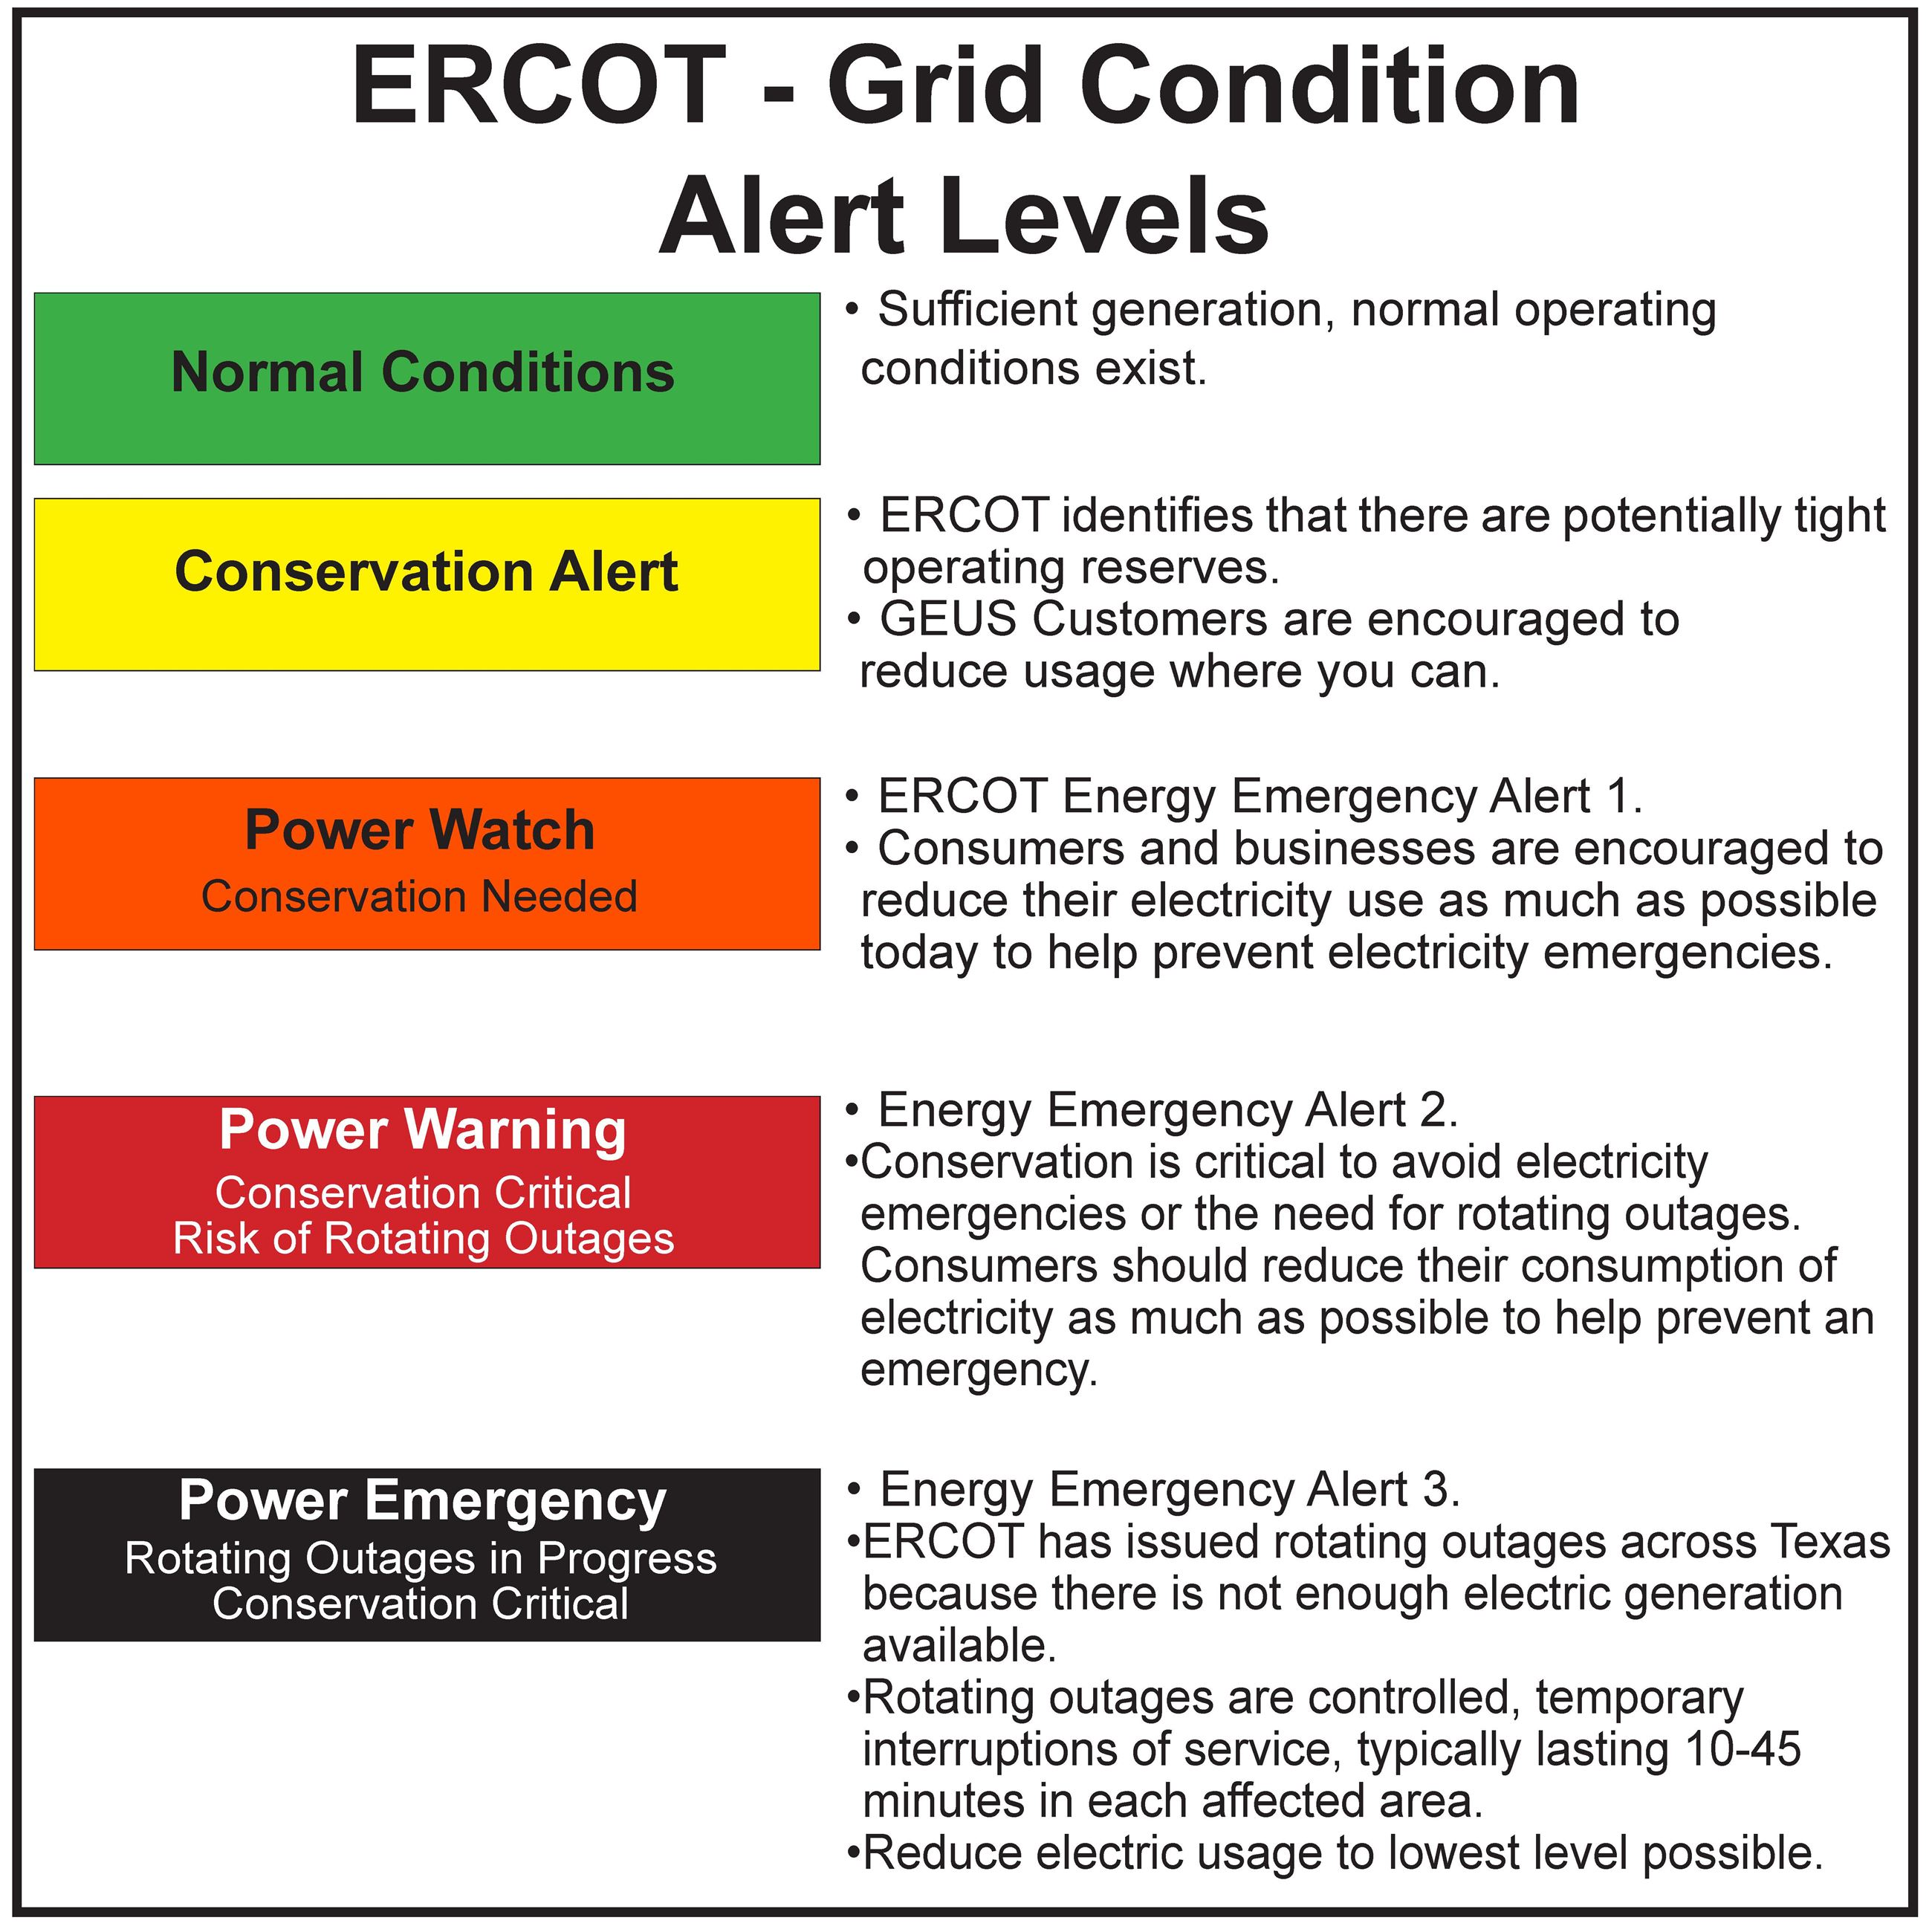 ERCOT Grid Condition Winter Alert Levels